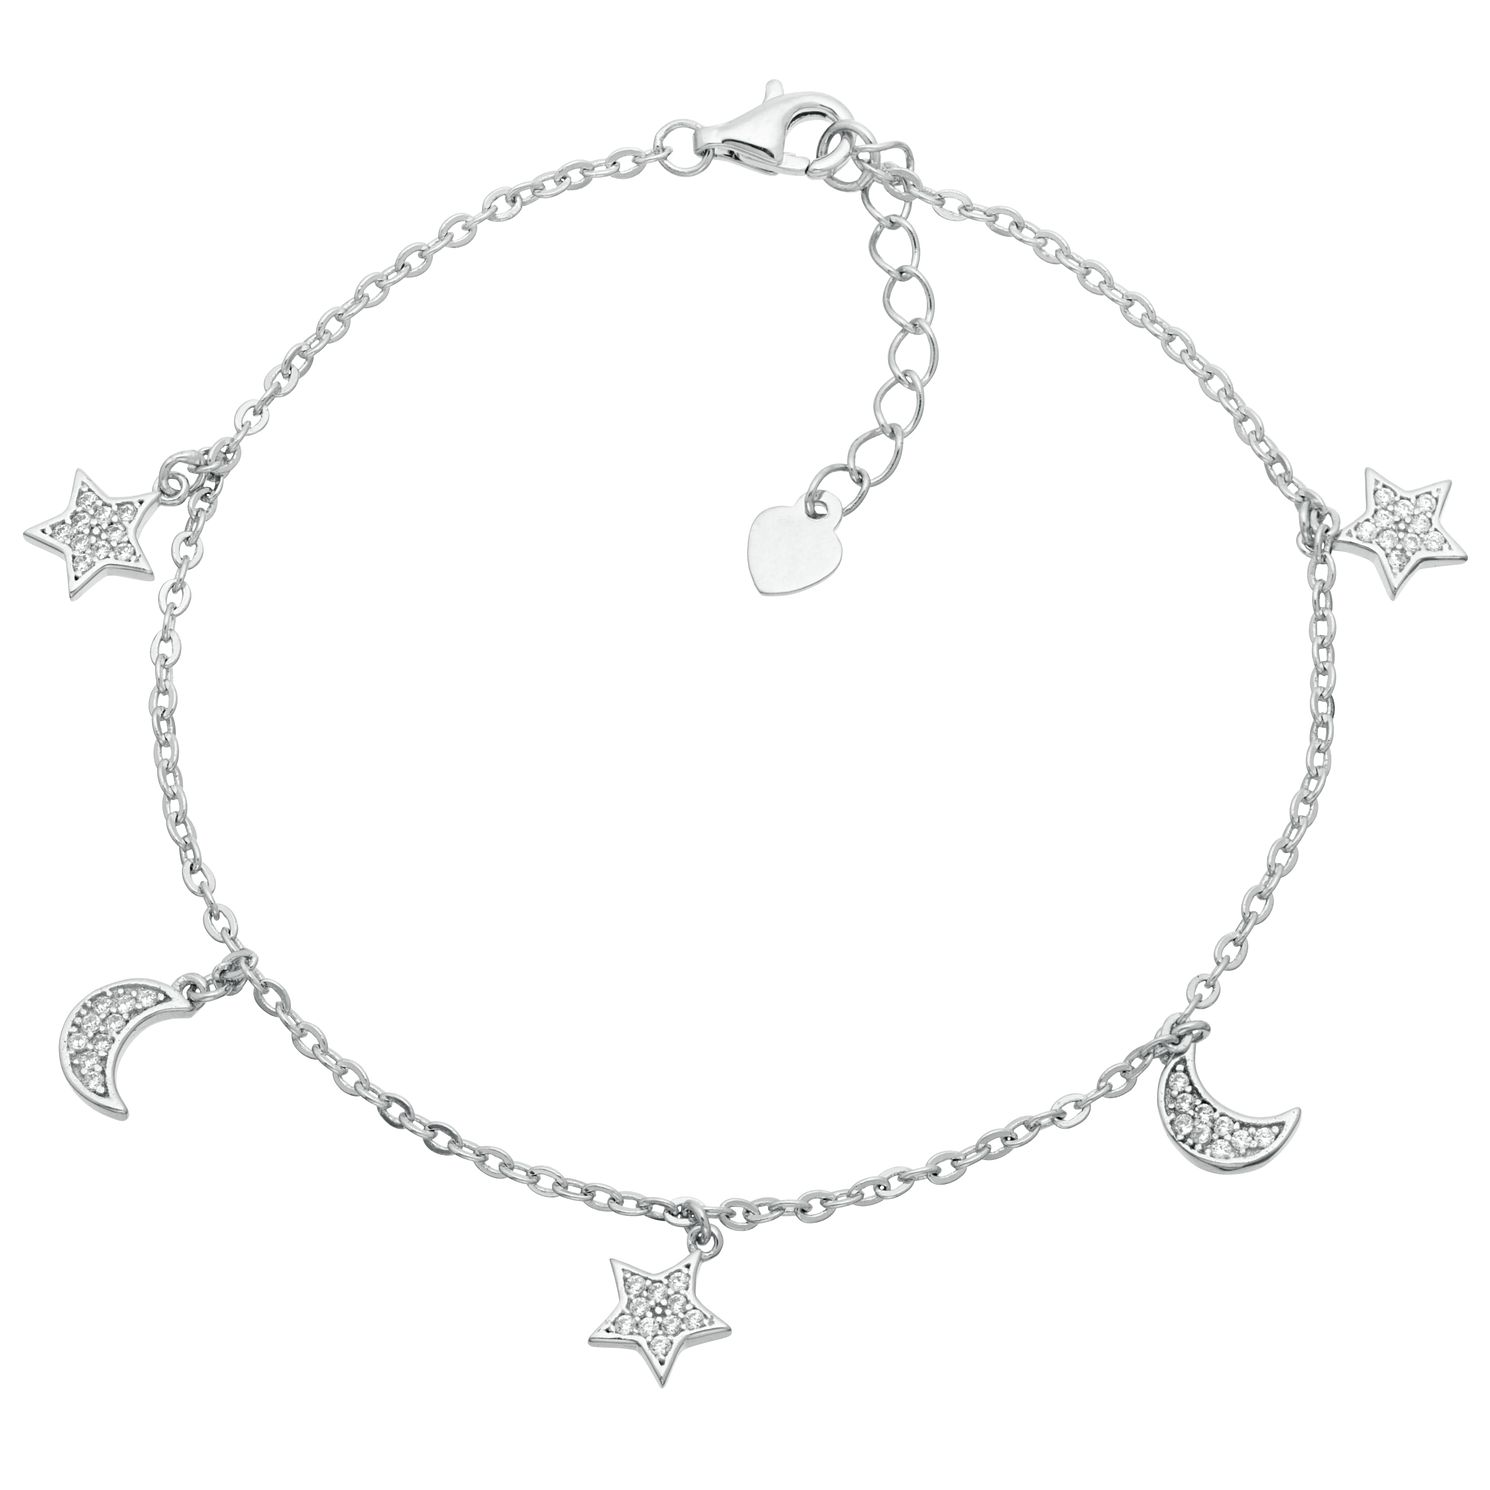 Silver Rhodium Cubic Zirconia Star & Moon Charm Bracelet - Product number 3960374